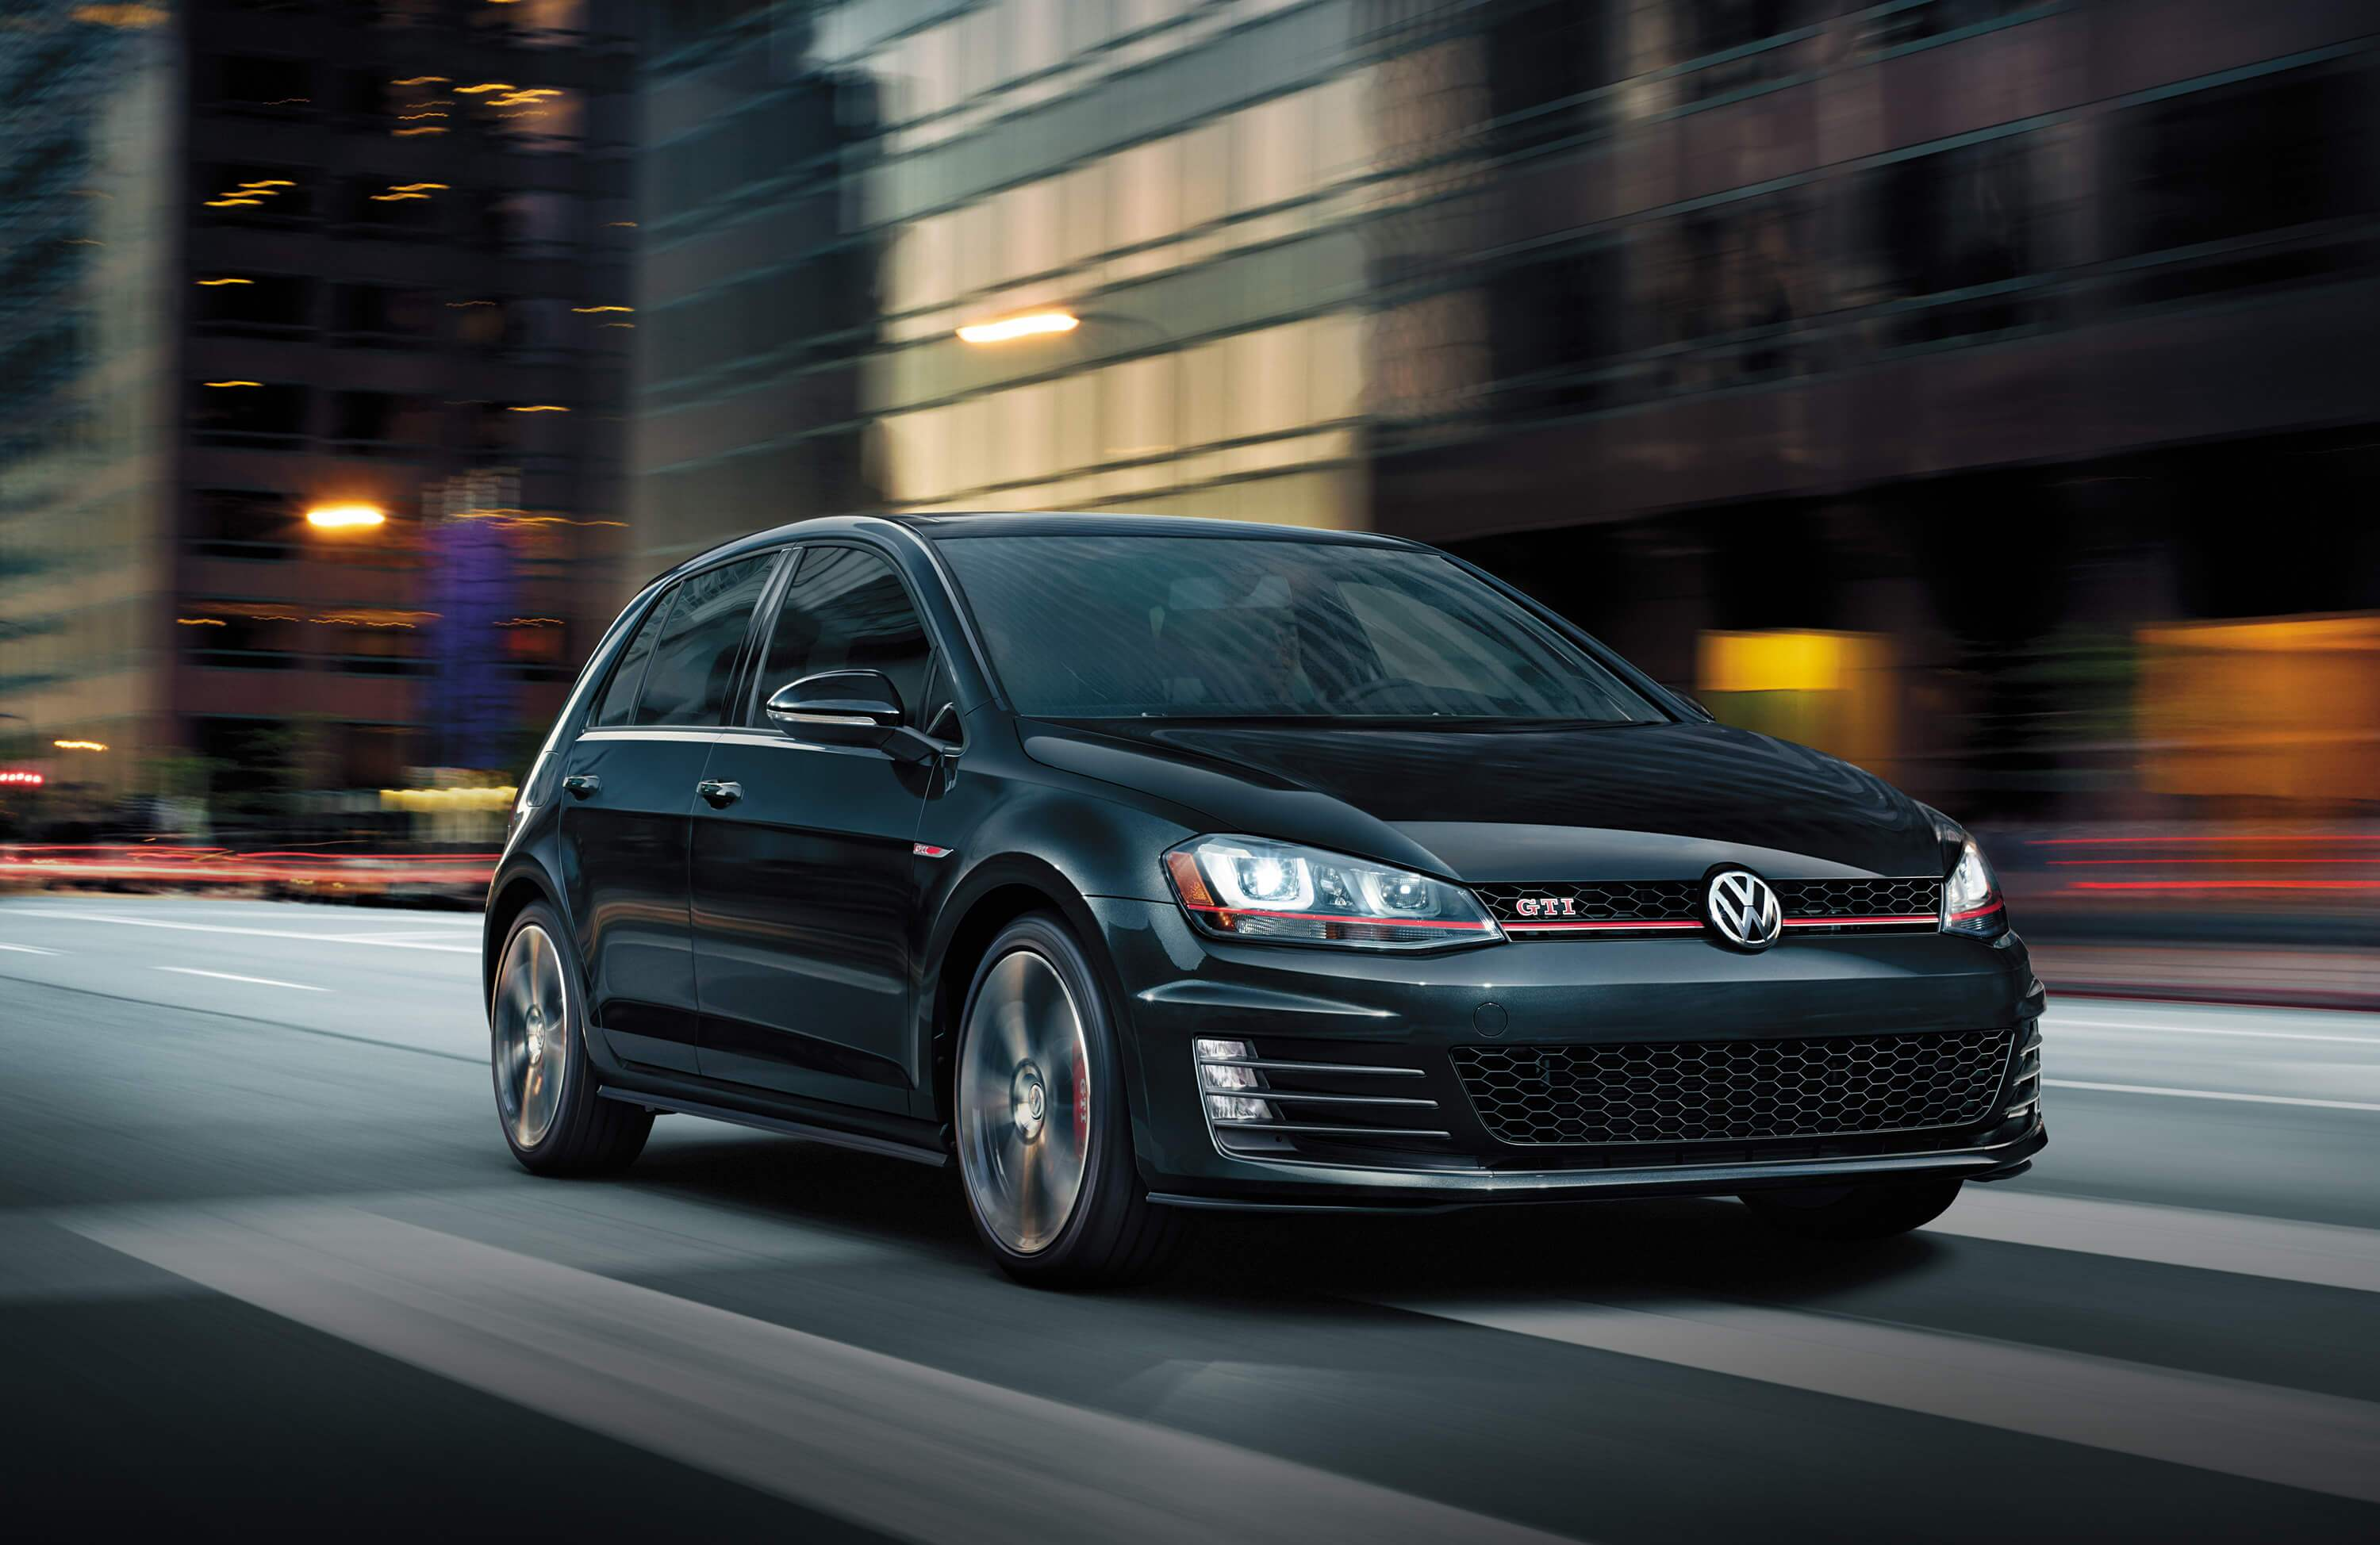 2016 Volkswagen GTI from Volkswagen of Van Nuys in Van Nuys, CA